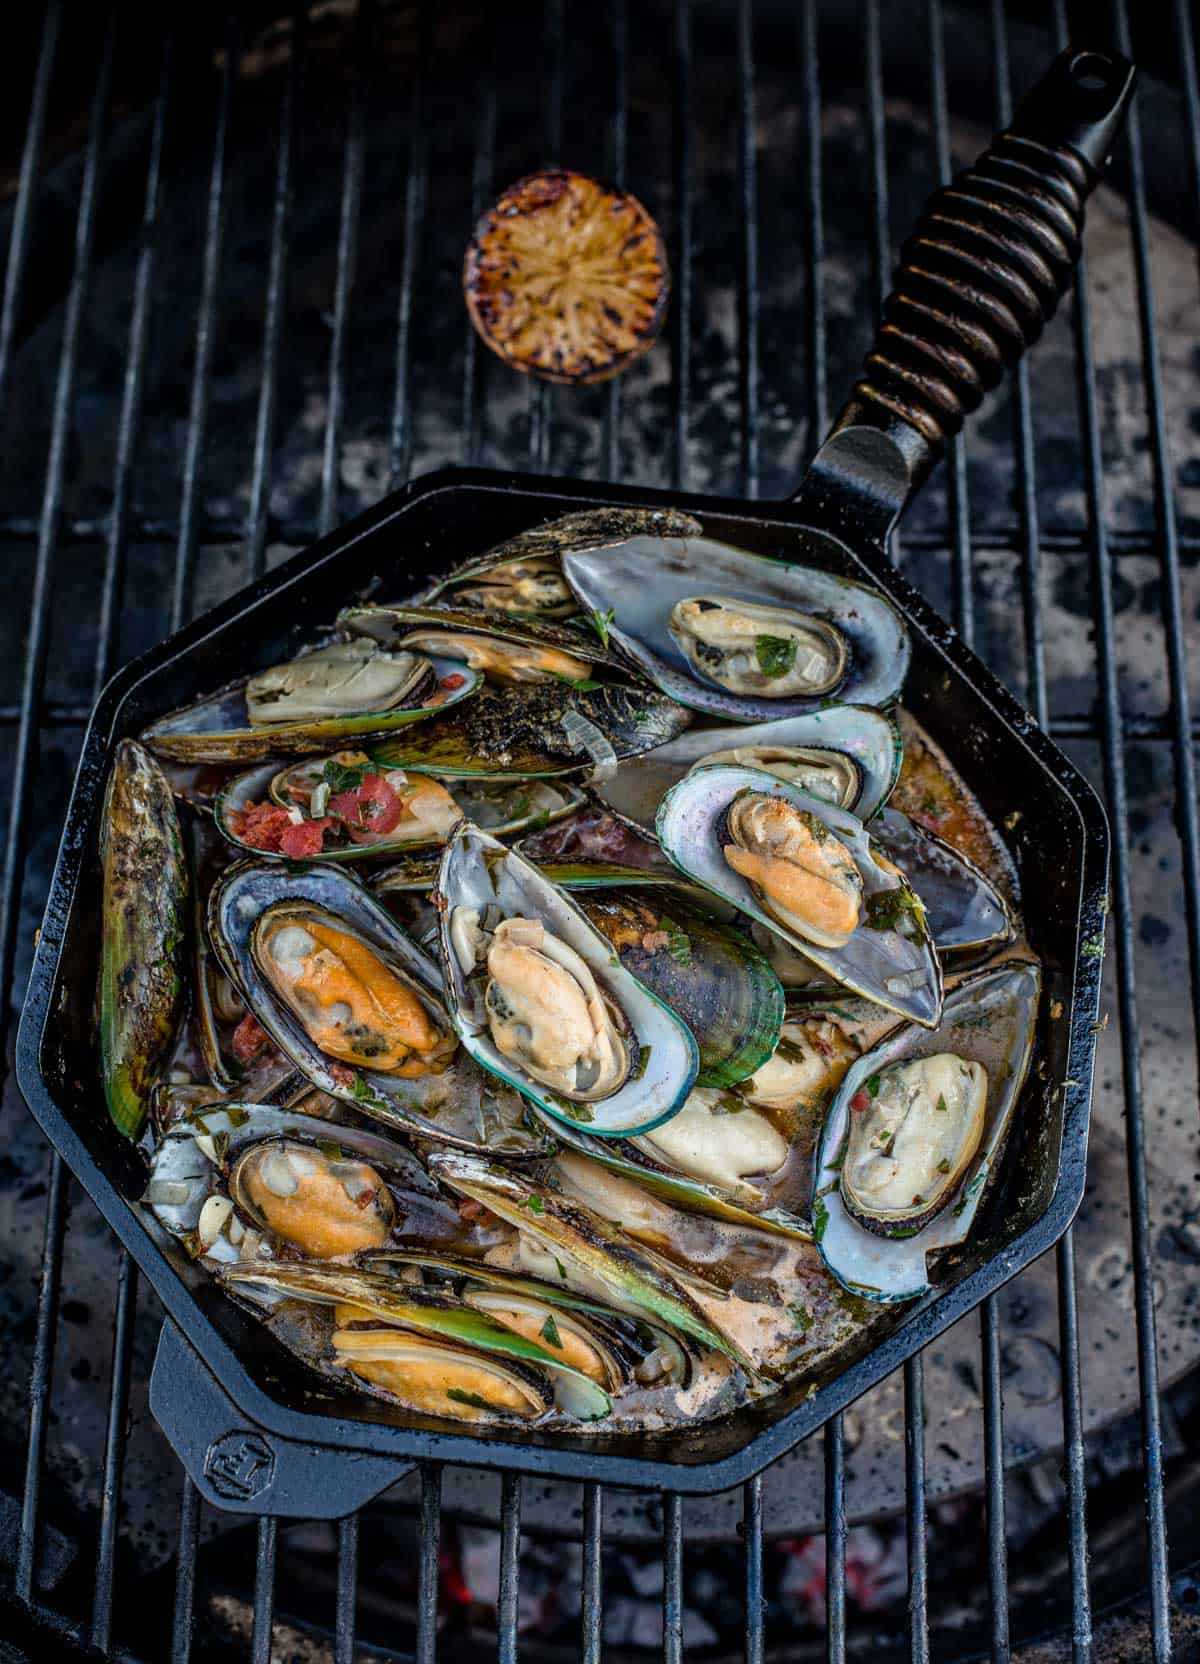 Grilled mussels in a cast iron pan on a hot grill